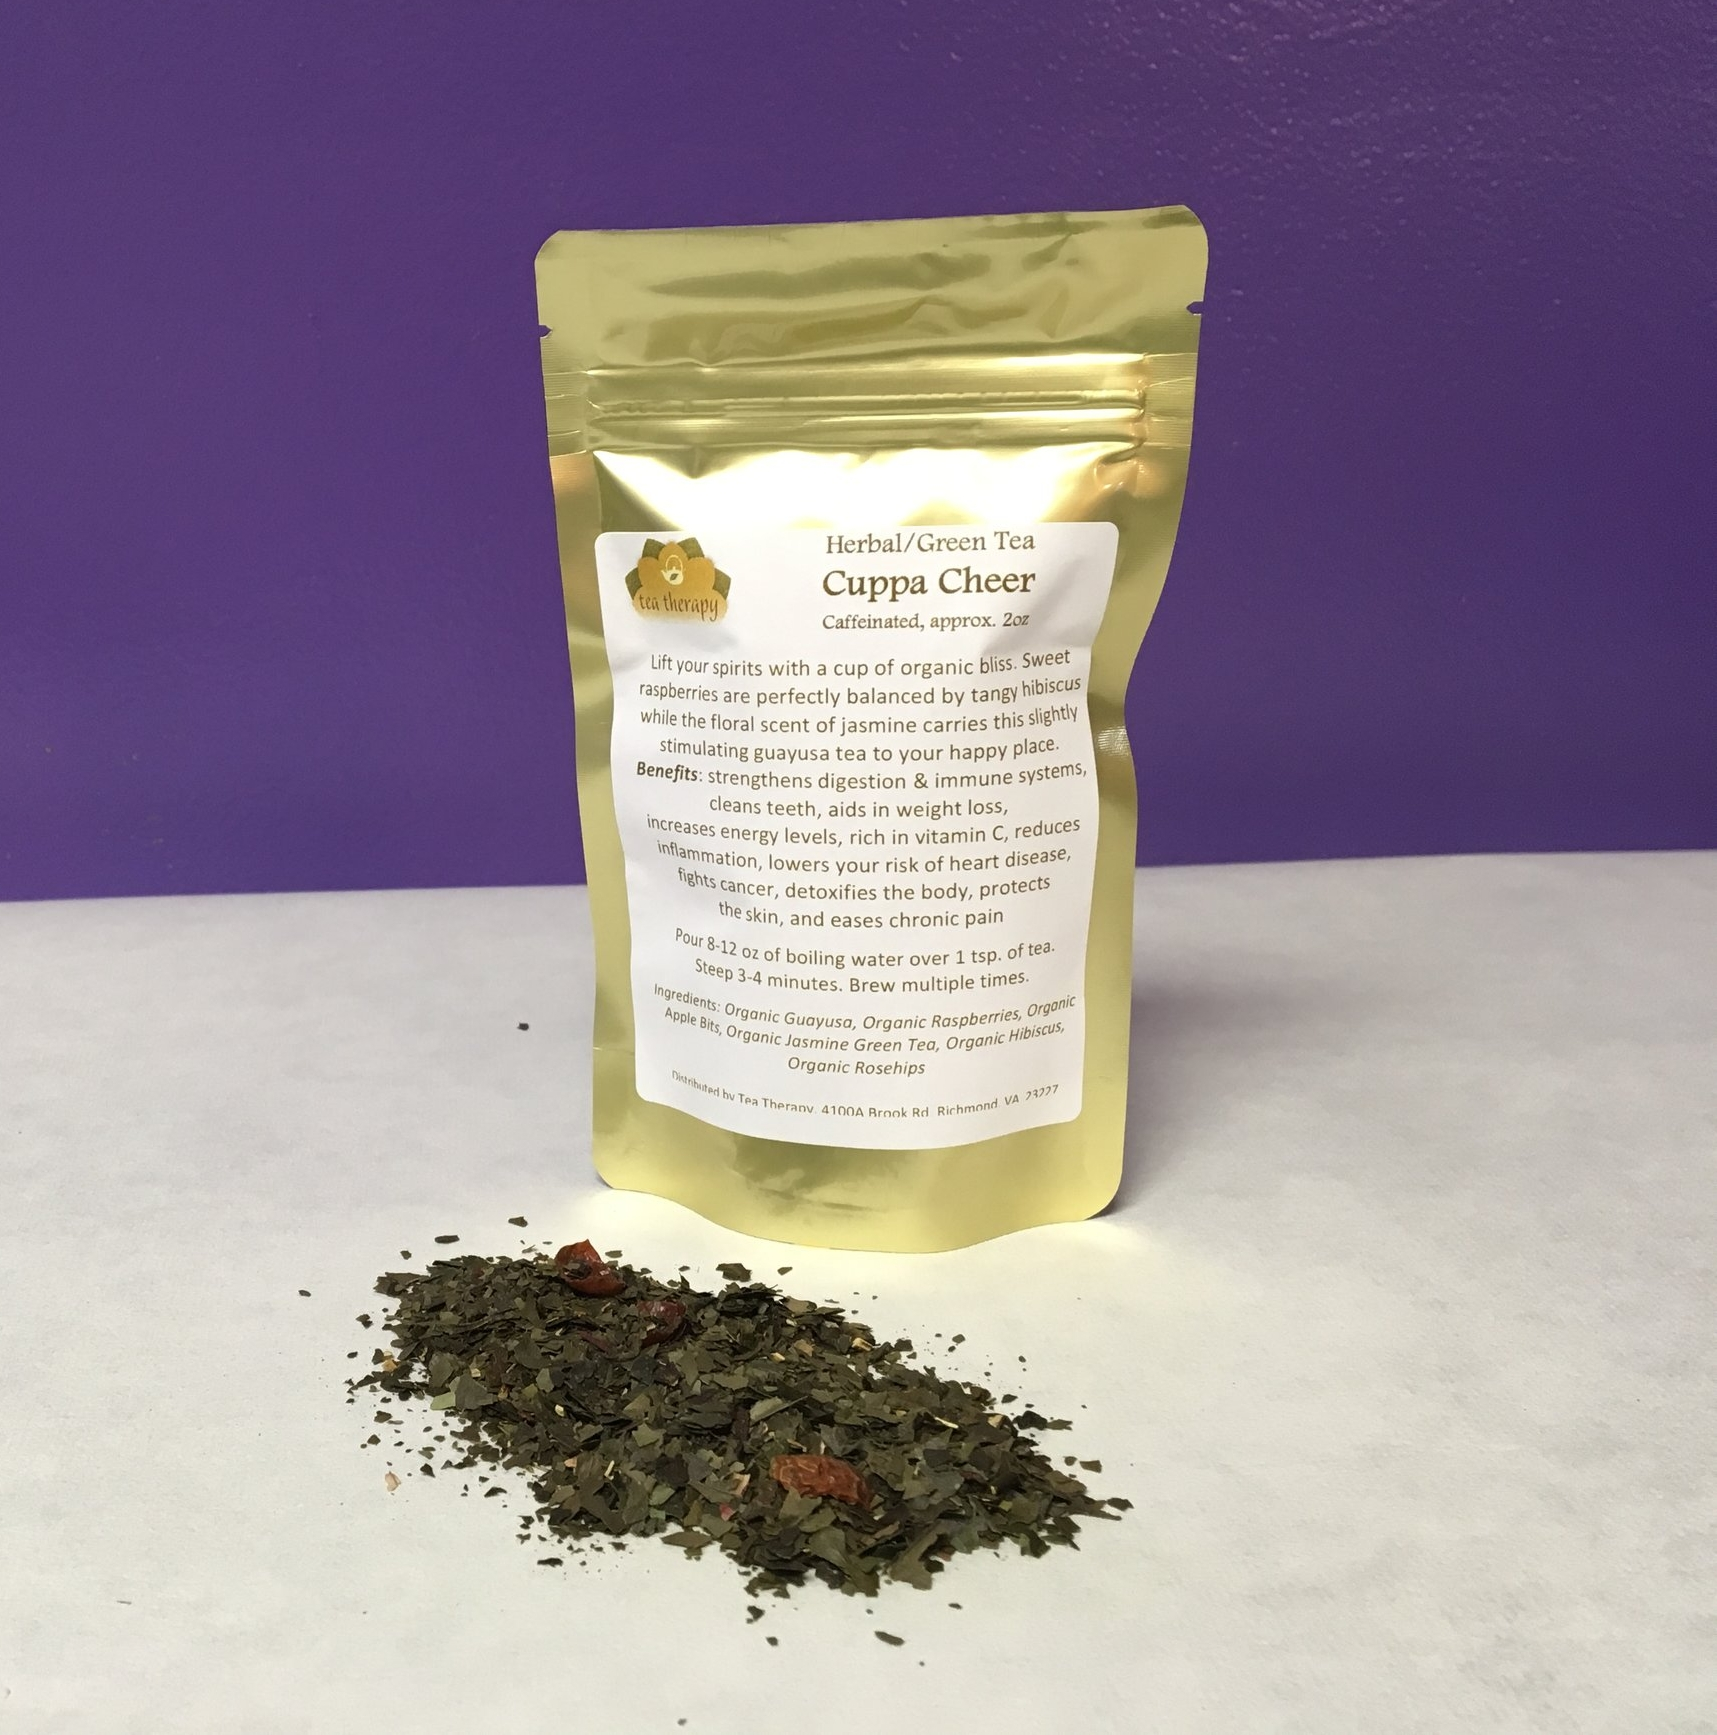 Cuppa Cheer - Herbal tea – caffeinated - Lift your spirits with a cup of organic bliss. Sweet raspberries are perfectly balanced by tangy hibiscus while the floral scent of jasmine carries this slightly stimulating guayusa tea to your happy place. Benefits: strengthens digestion & immune systems, cleans teeth, aids in weight loss, increases energy levels, rich in vitamin C, reduces inflammation, lowers your risk of heart disease, fights cancer, detoxifies the body, protects the skin, and eases chronic pain. Ingredients: Organic Guayusa, Organic Raspberries, Organic Apple Bits, Organic Jasmine Green Tea, Organic Hibiscus, Organic Rosehips